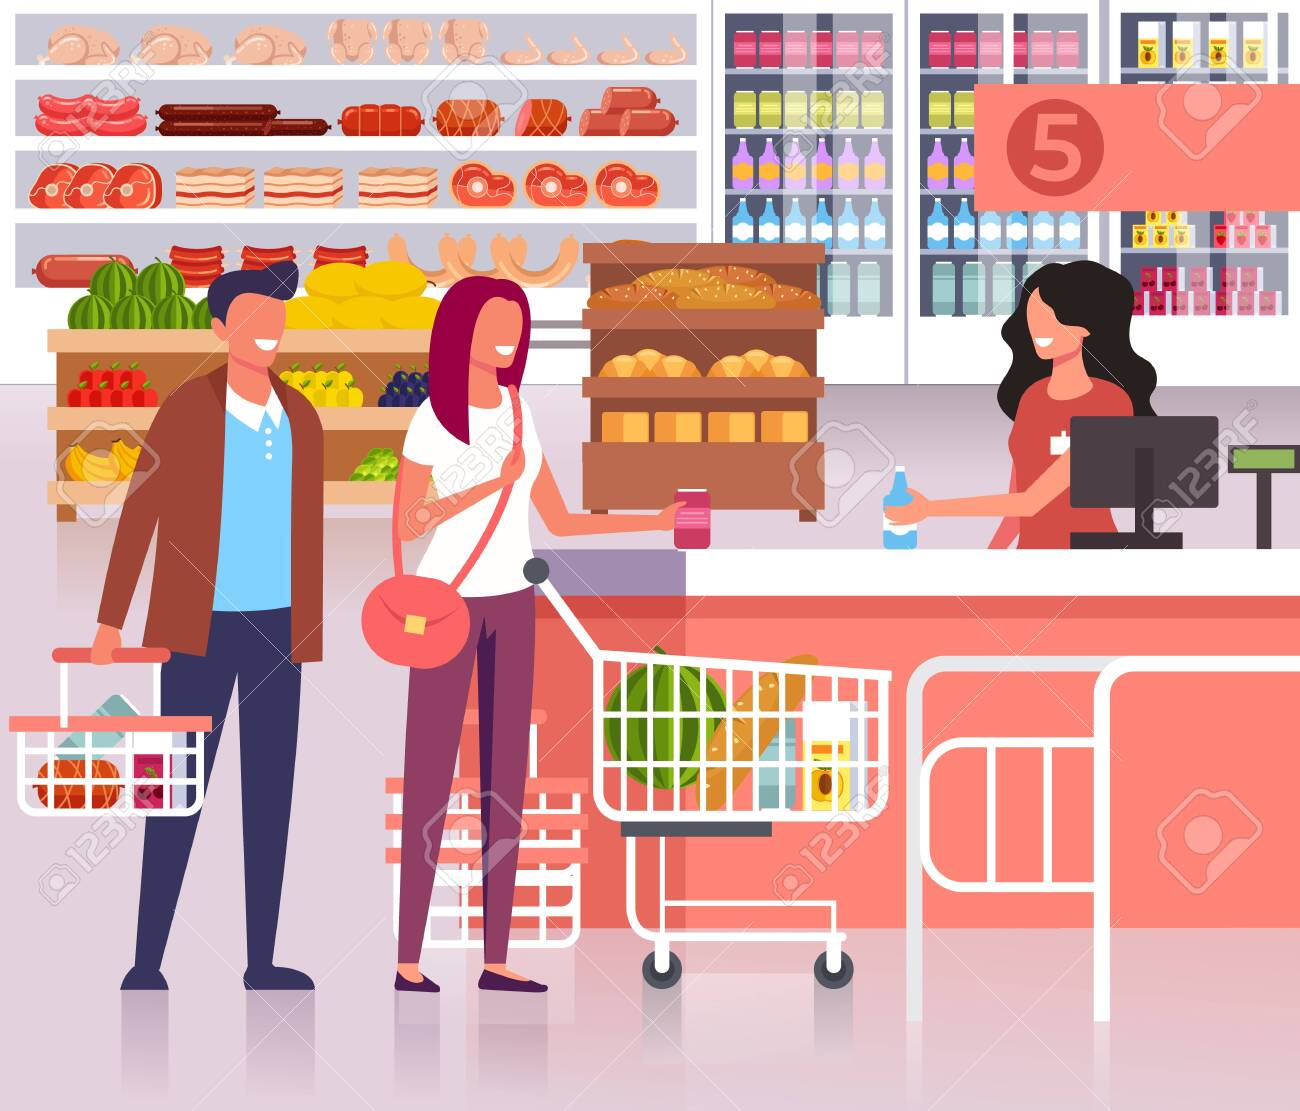 People In The Supermarket Store Vector Flat Cartoon Graphic Royalty Free Cliparts Vectors And Stock Illustration Image 122557156